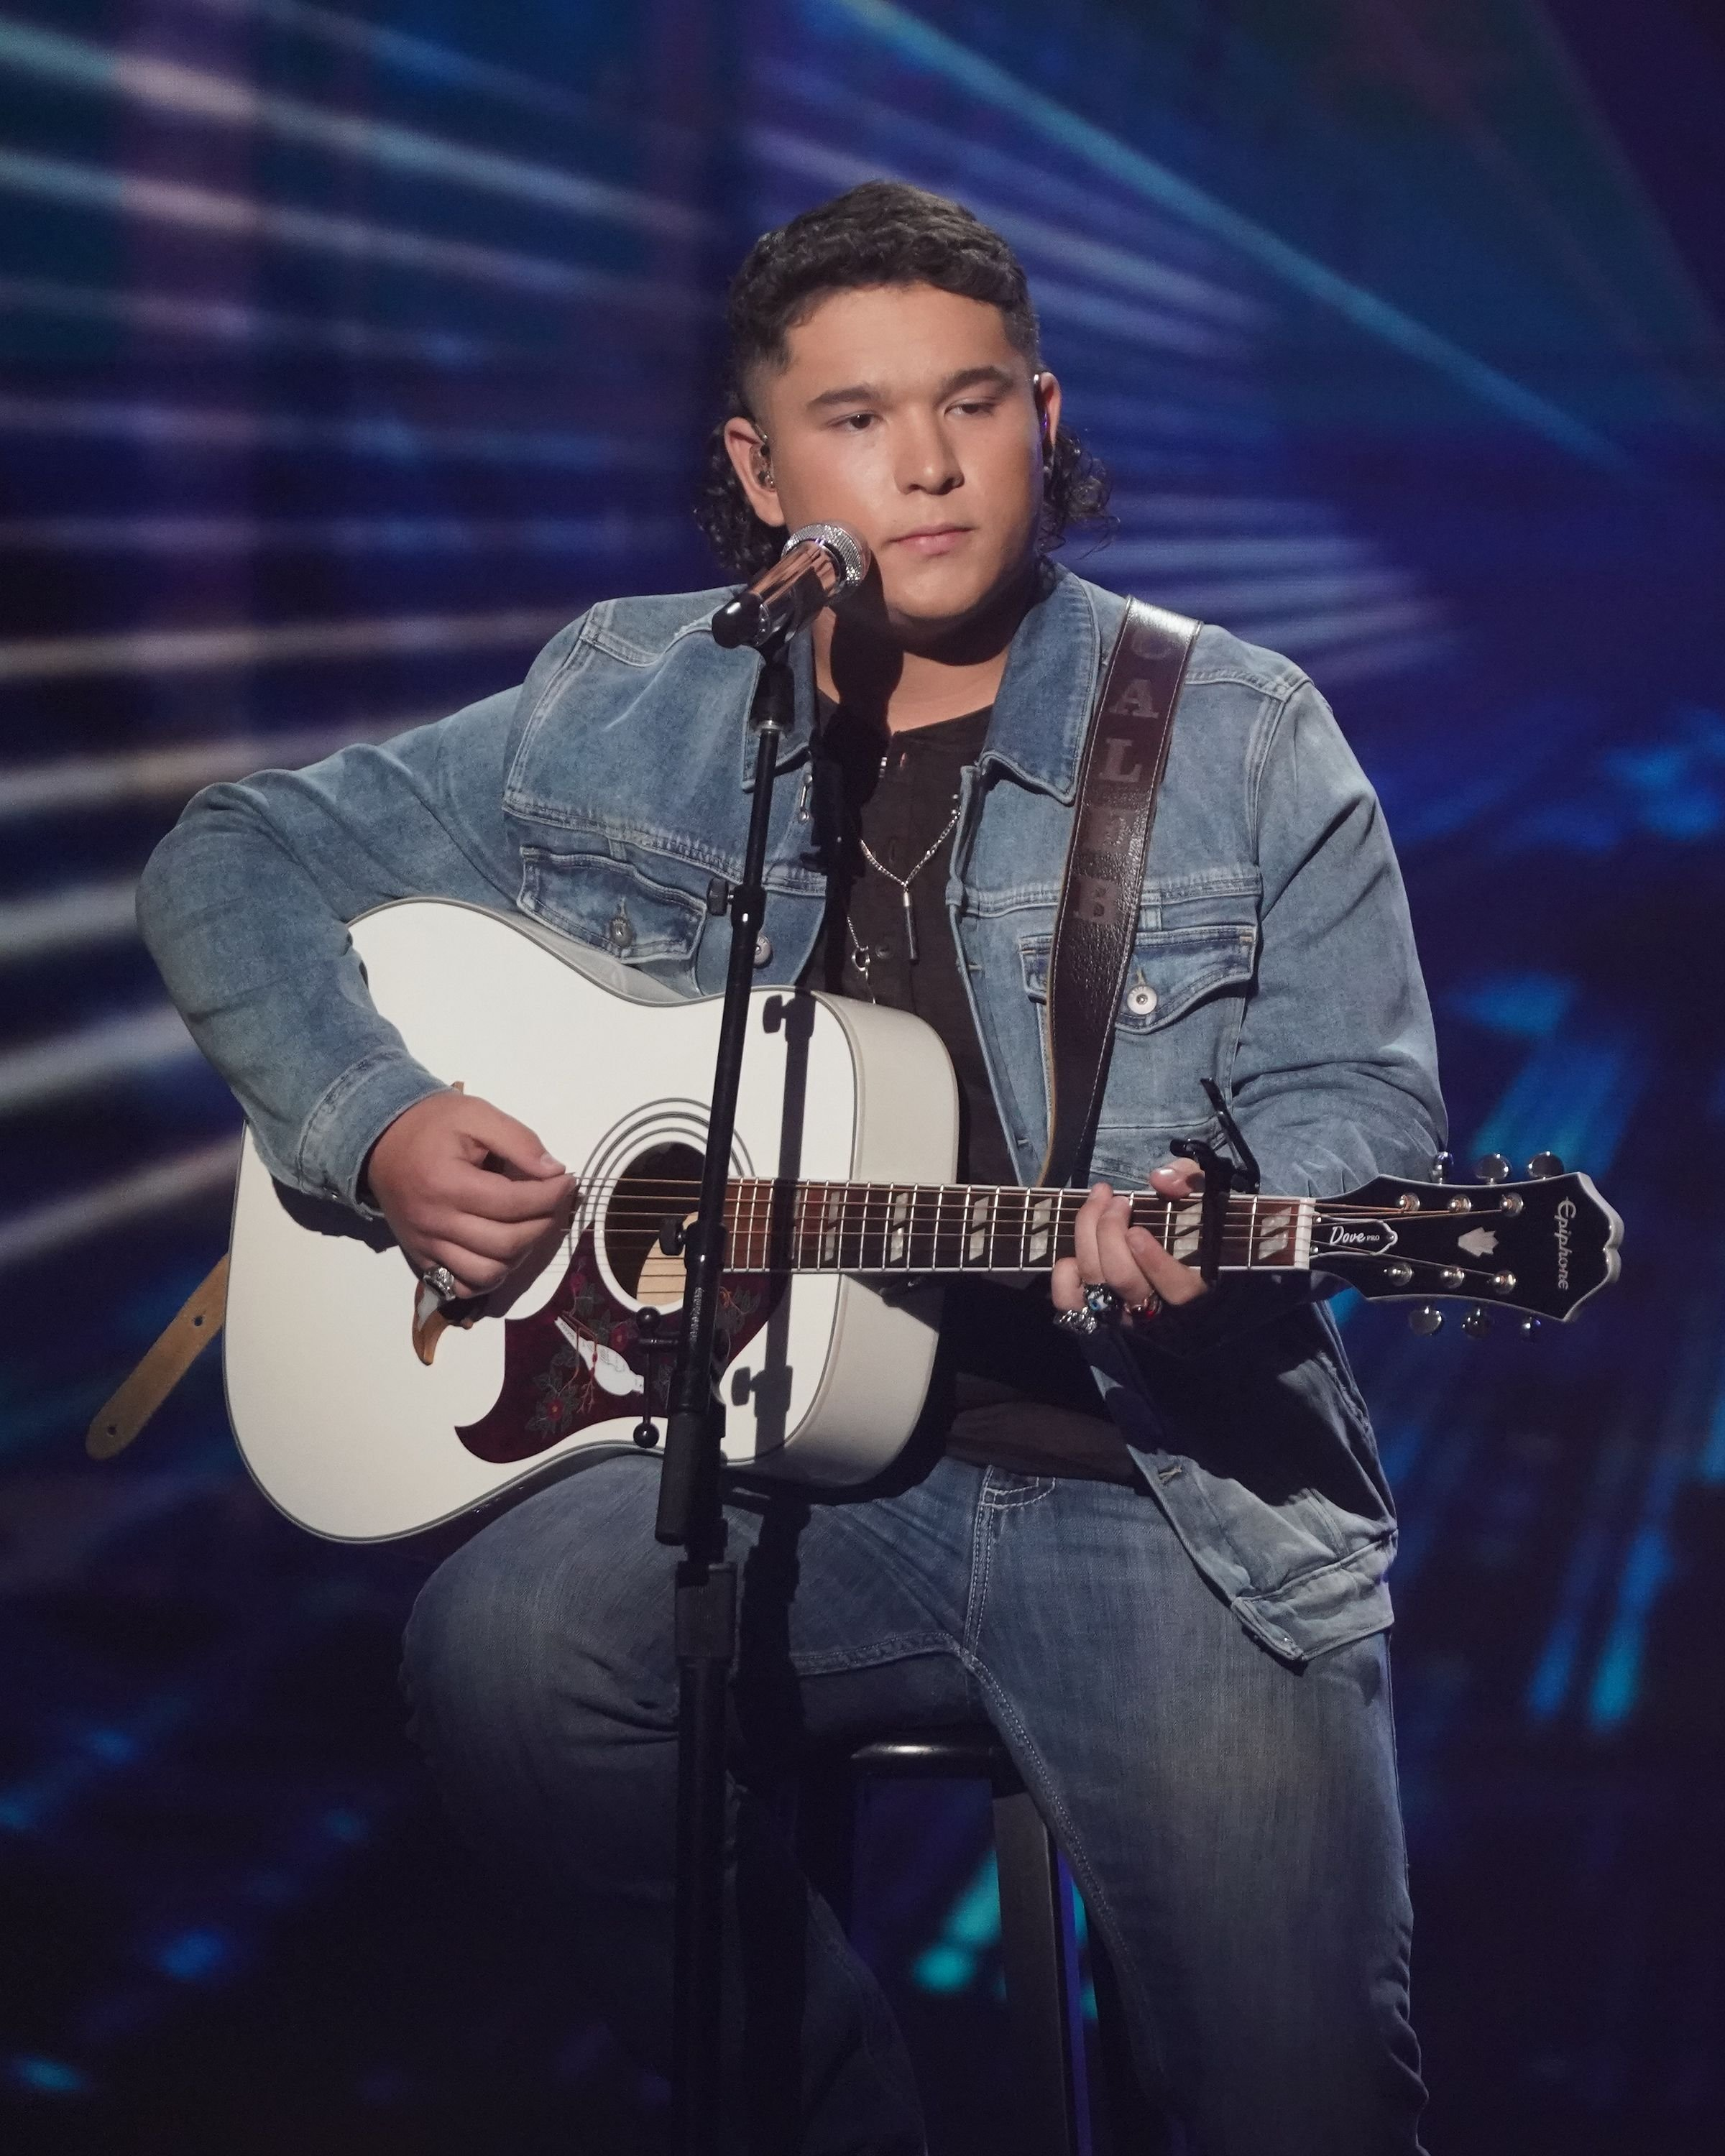 """Caleb Kennedy at ABC's """"American Idol"""" - Season Four on May 09, 2021 